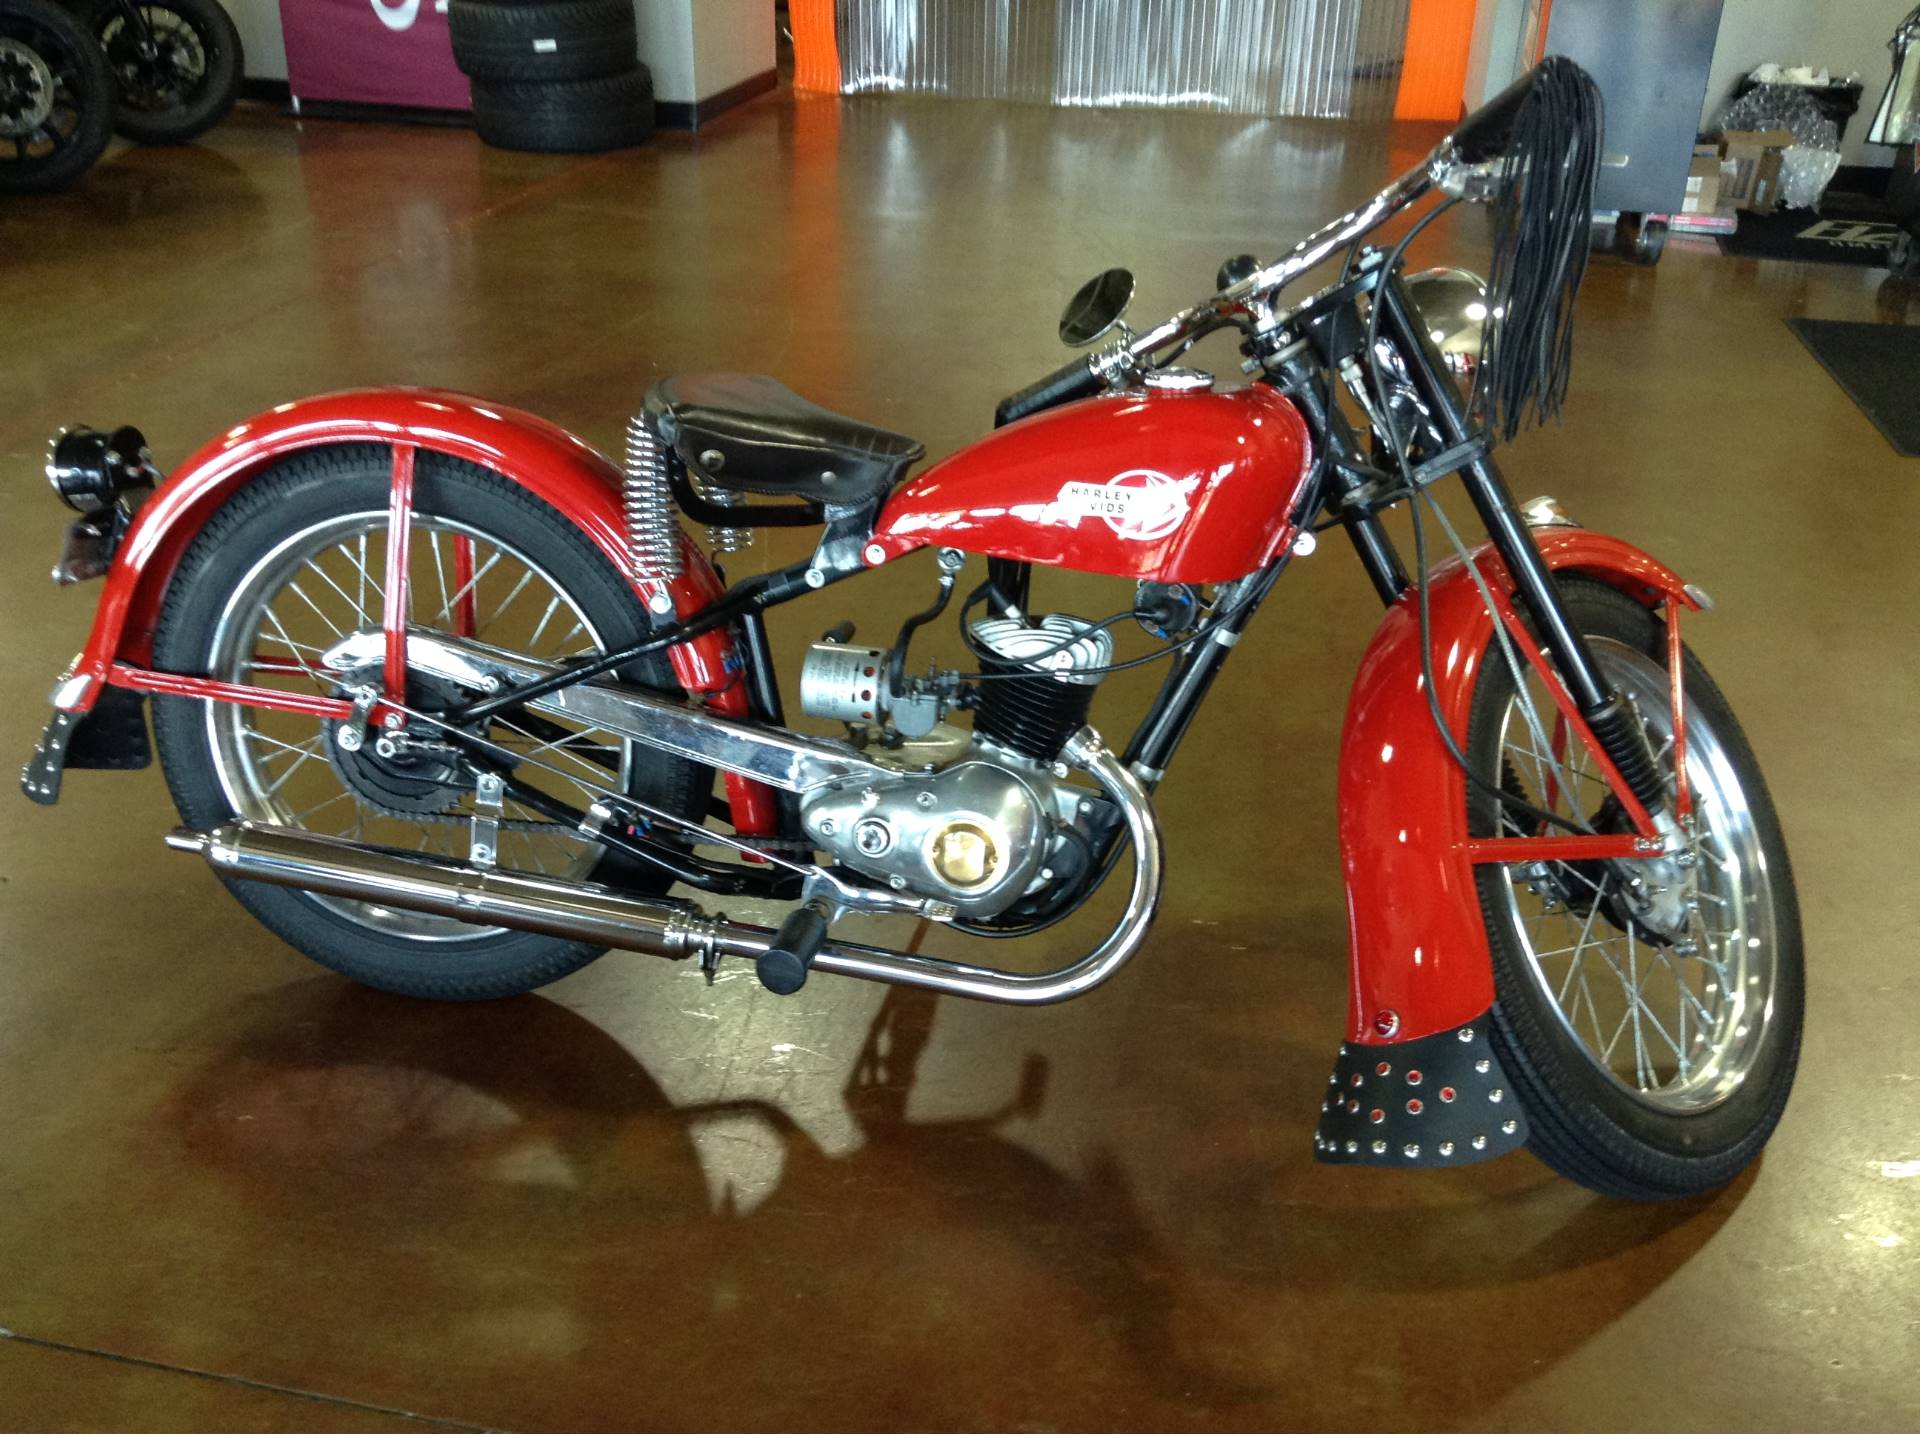 Used 1959 Harley Davidson Hummer Motorcycles In Panama City Beach